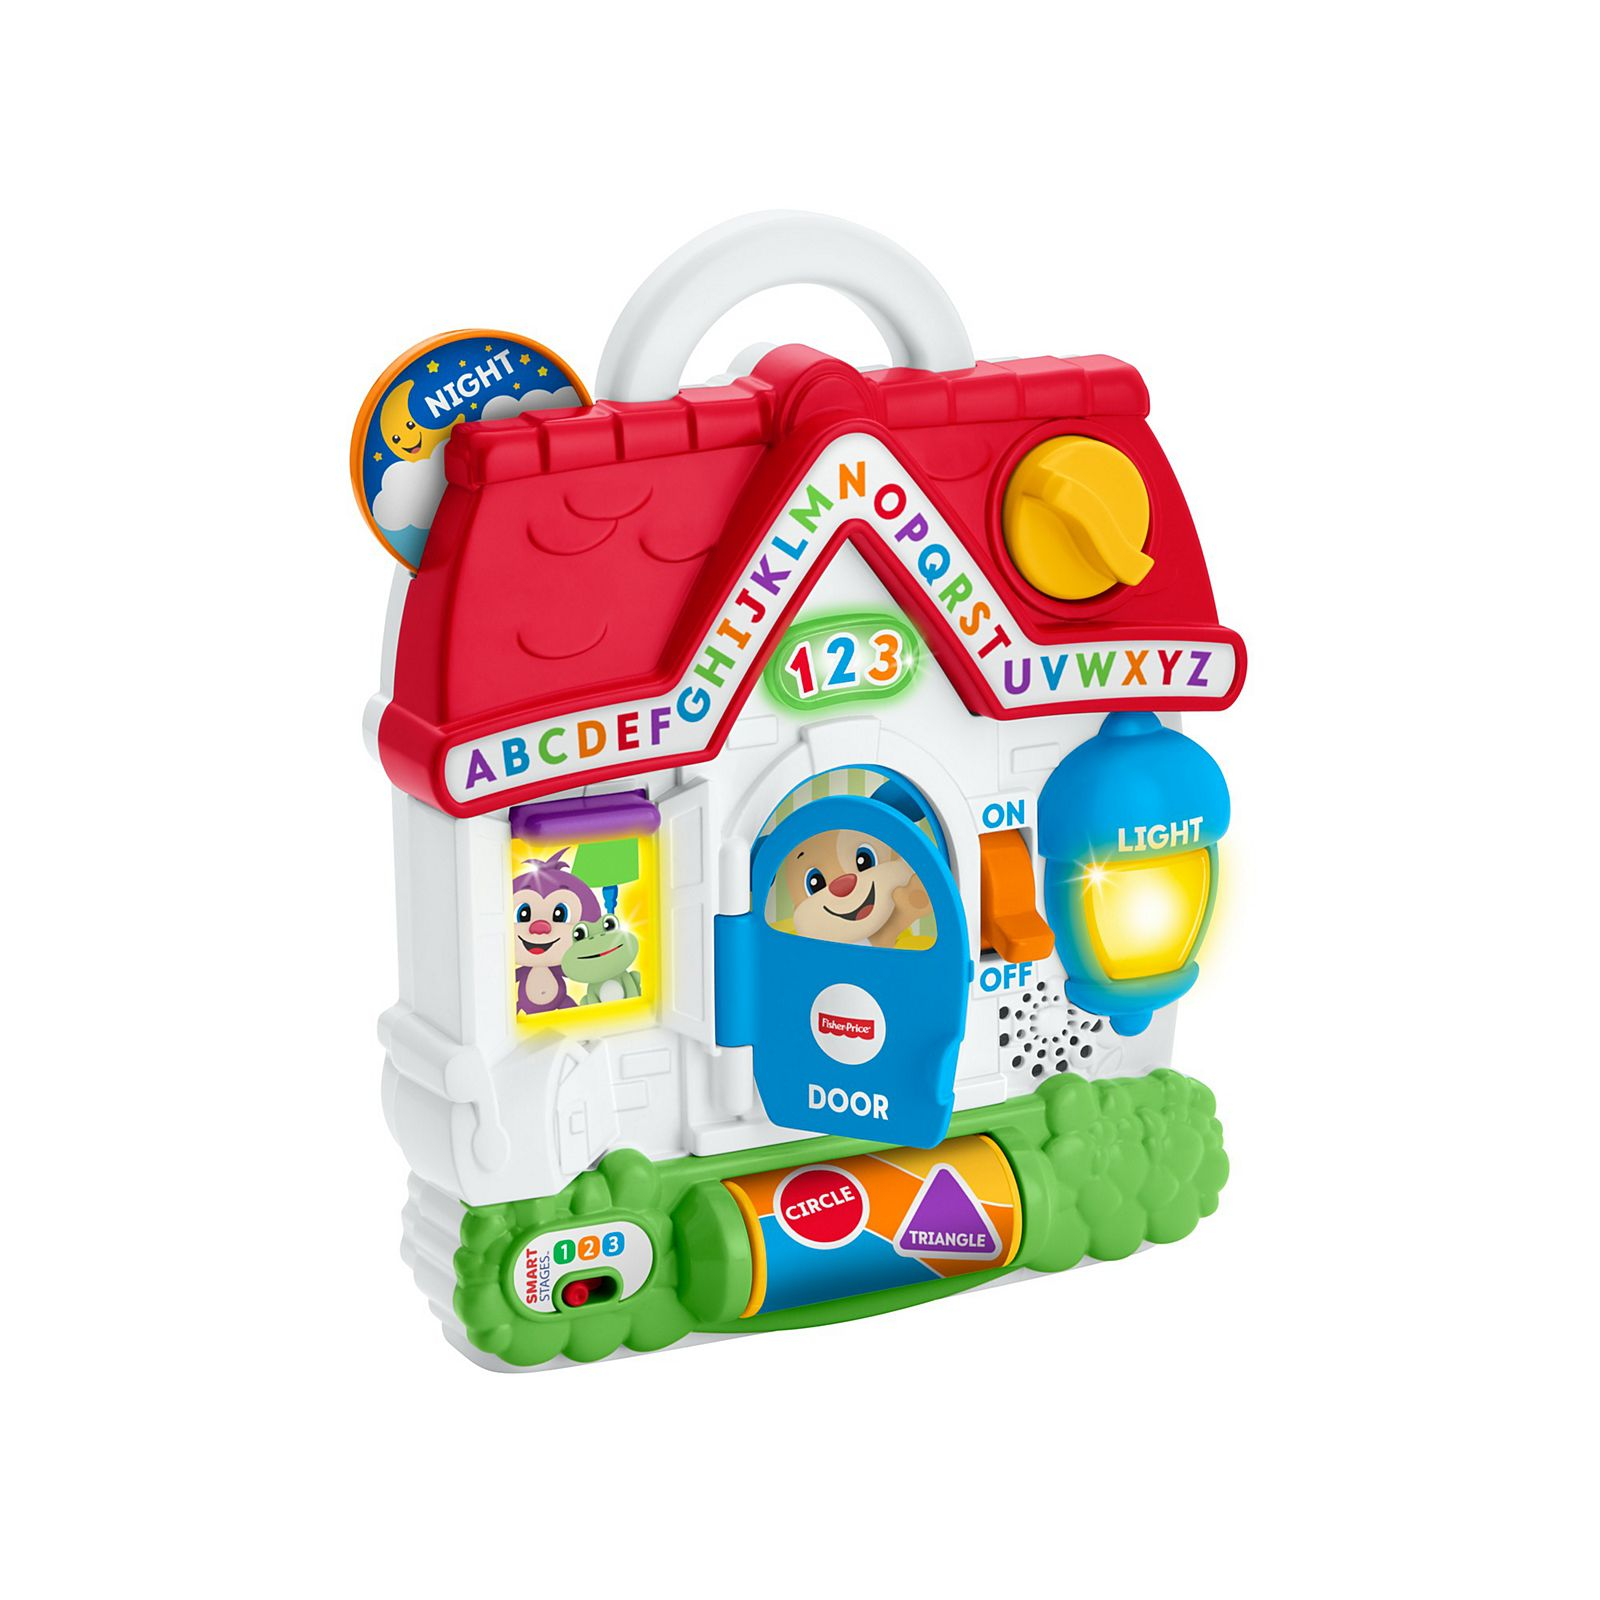 bcc2cae28 Laugh   Learn® Puppy s Busy Activity Home